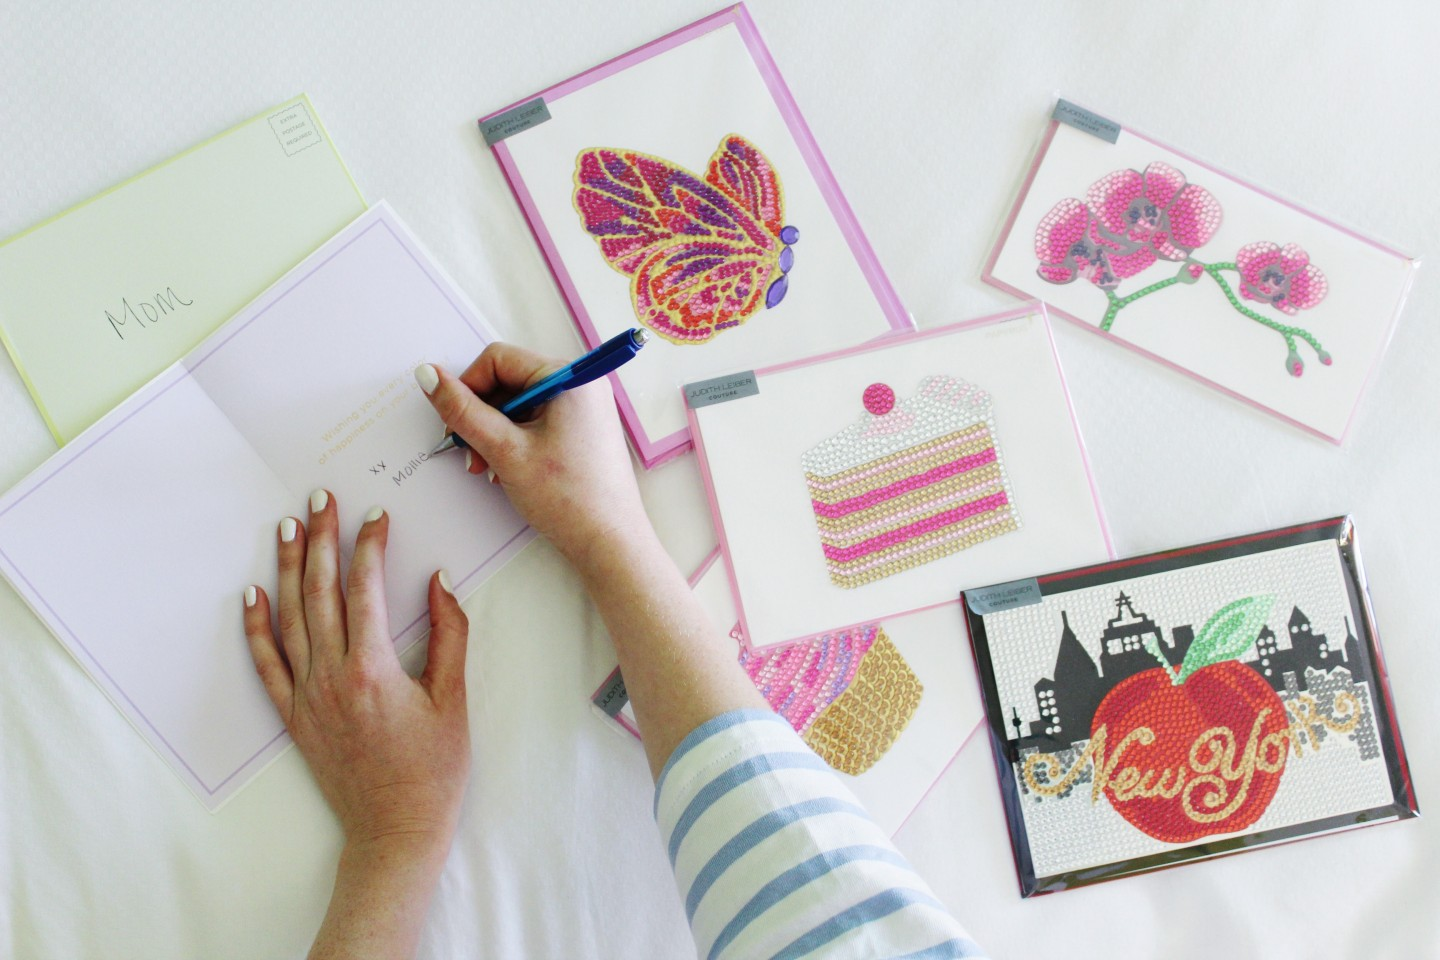 Lifestyle blogger Mollie Sheperdson shares the new Papyrus x Judith Leiber cards